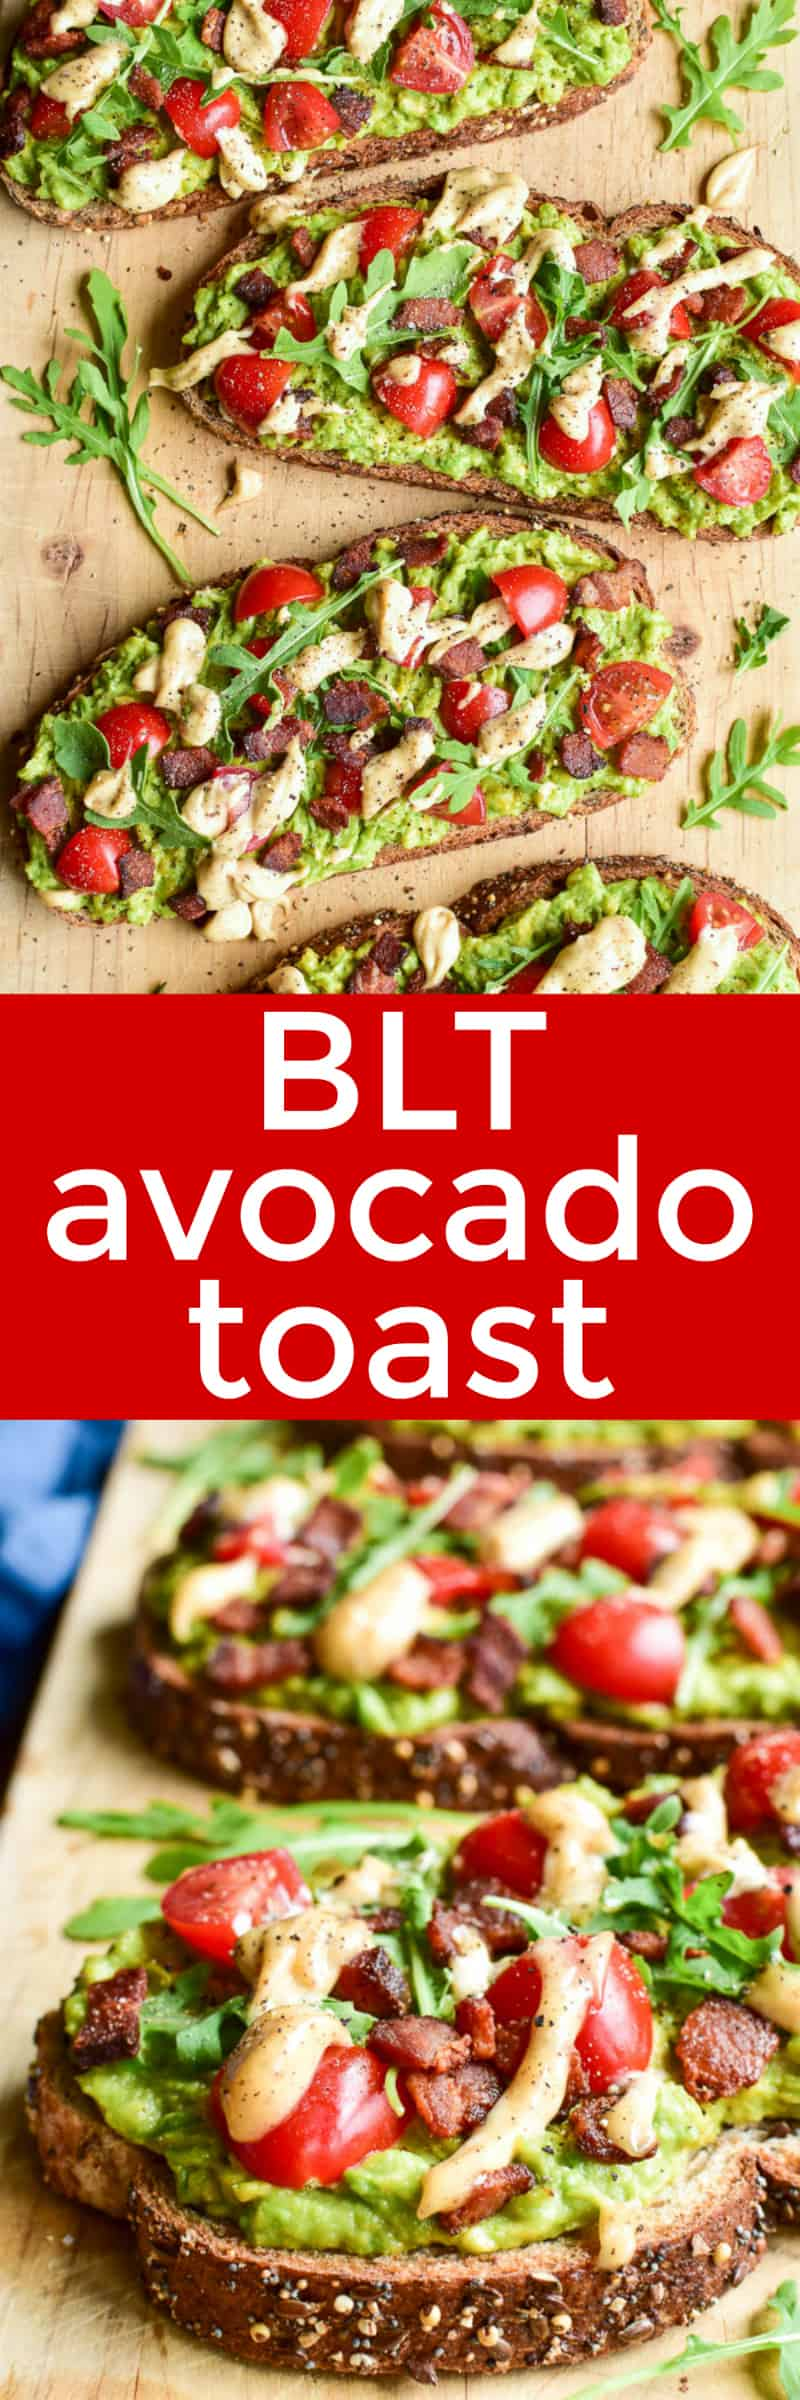 Collage image of BLT Avocado Toast on wooden board